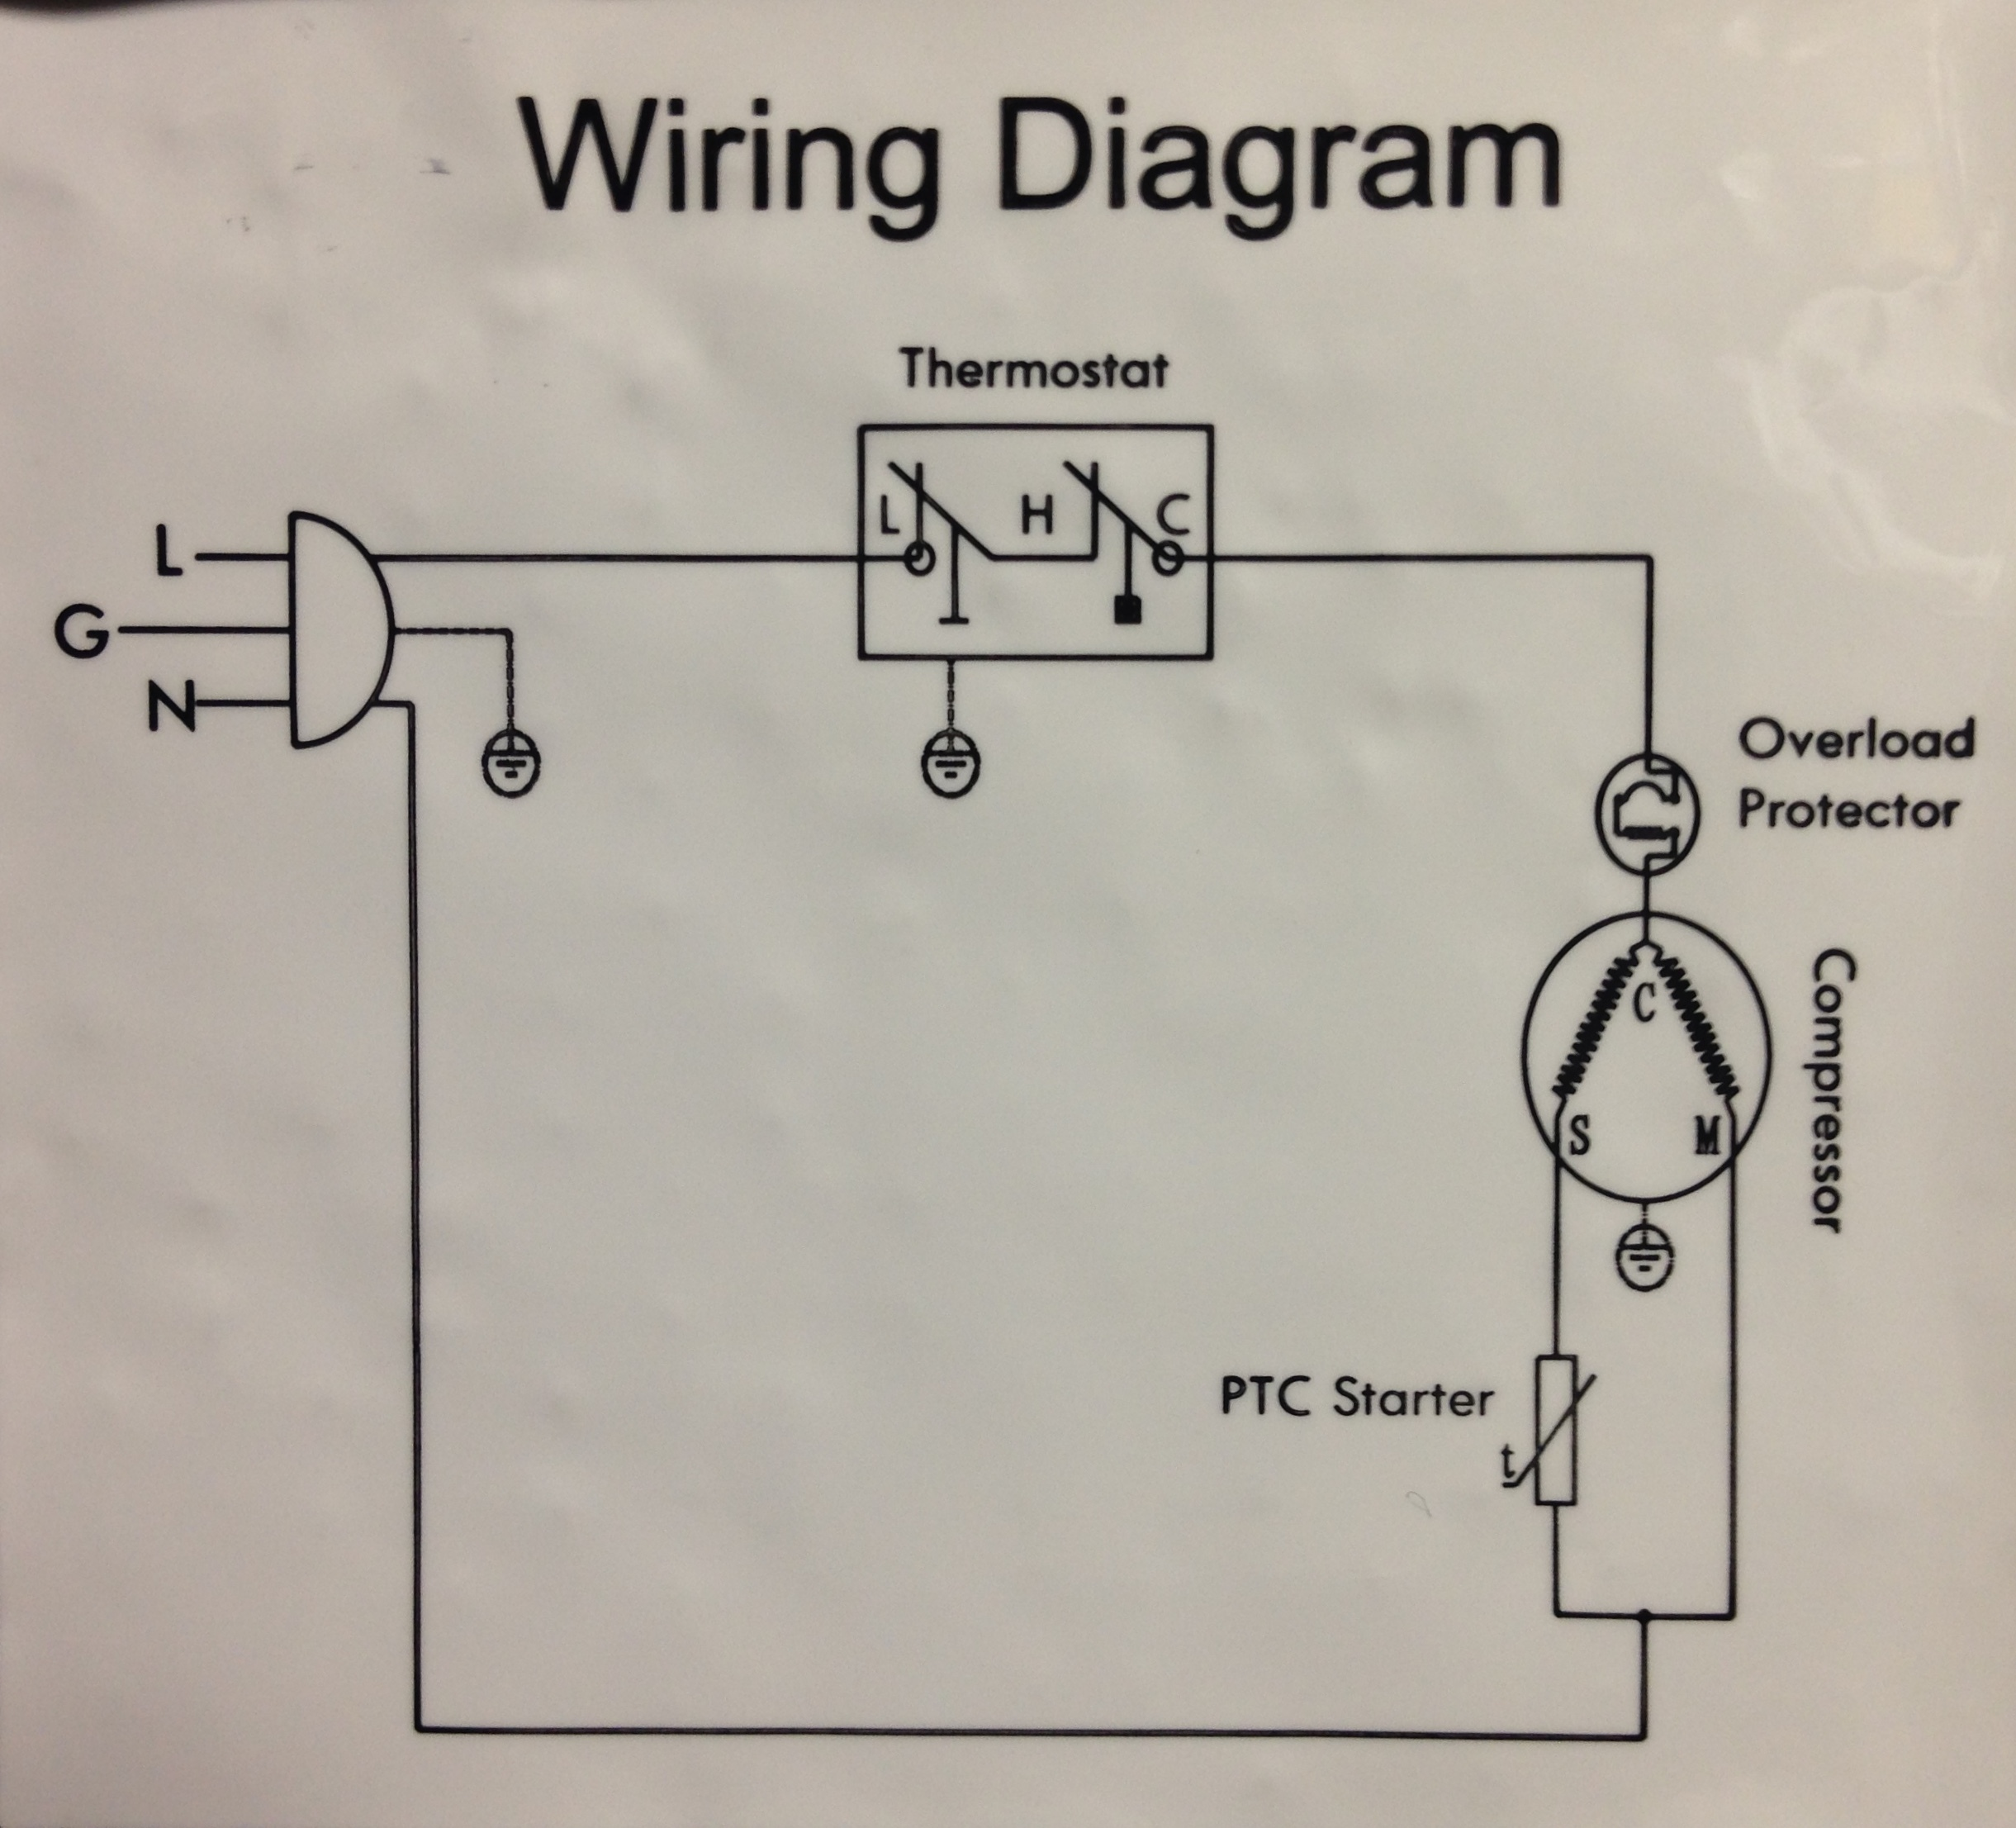 Fridge Thermostat Wiring